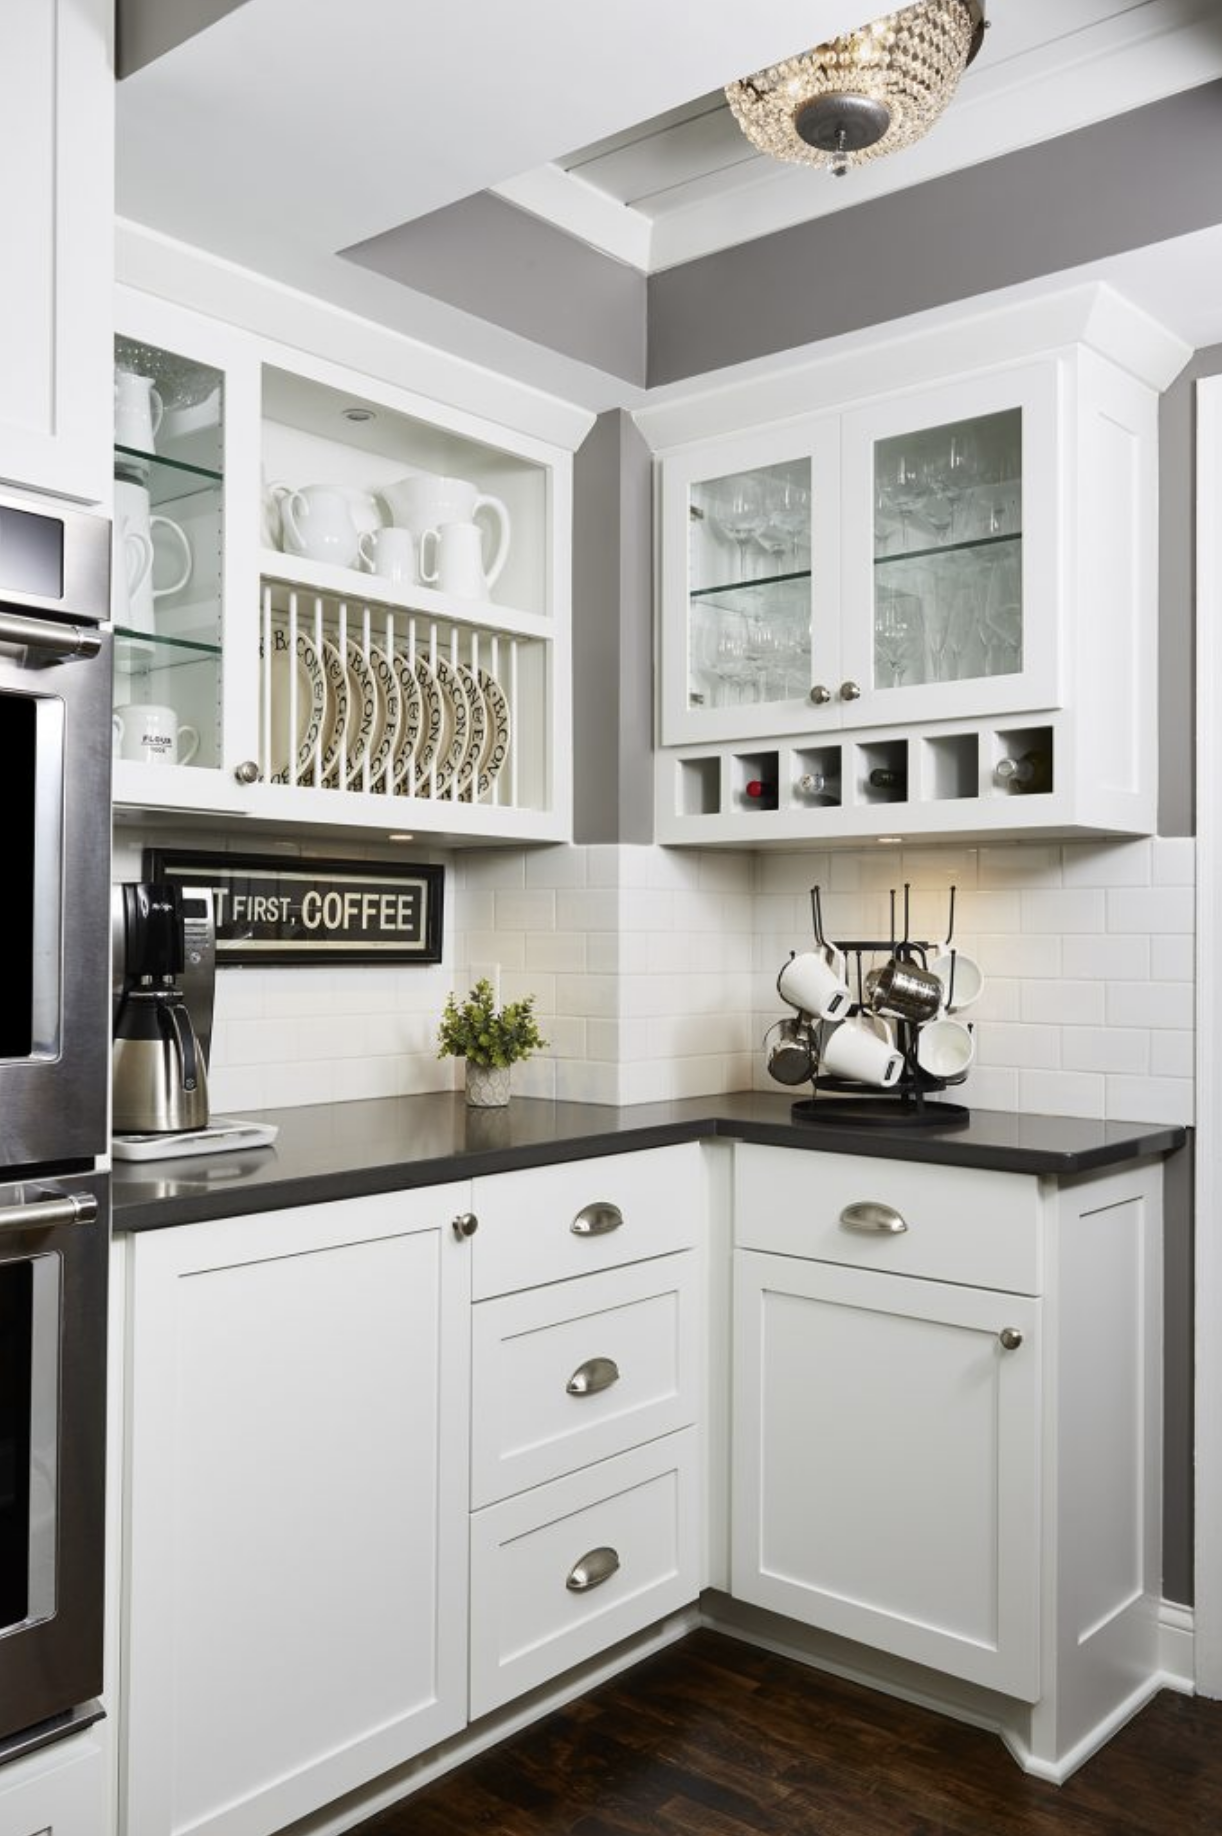 A coffee nook was created to be both functional and stylish in this updated contemporary kitchen.